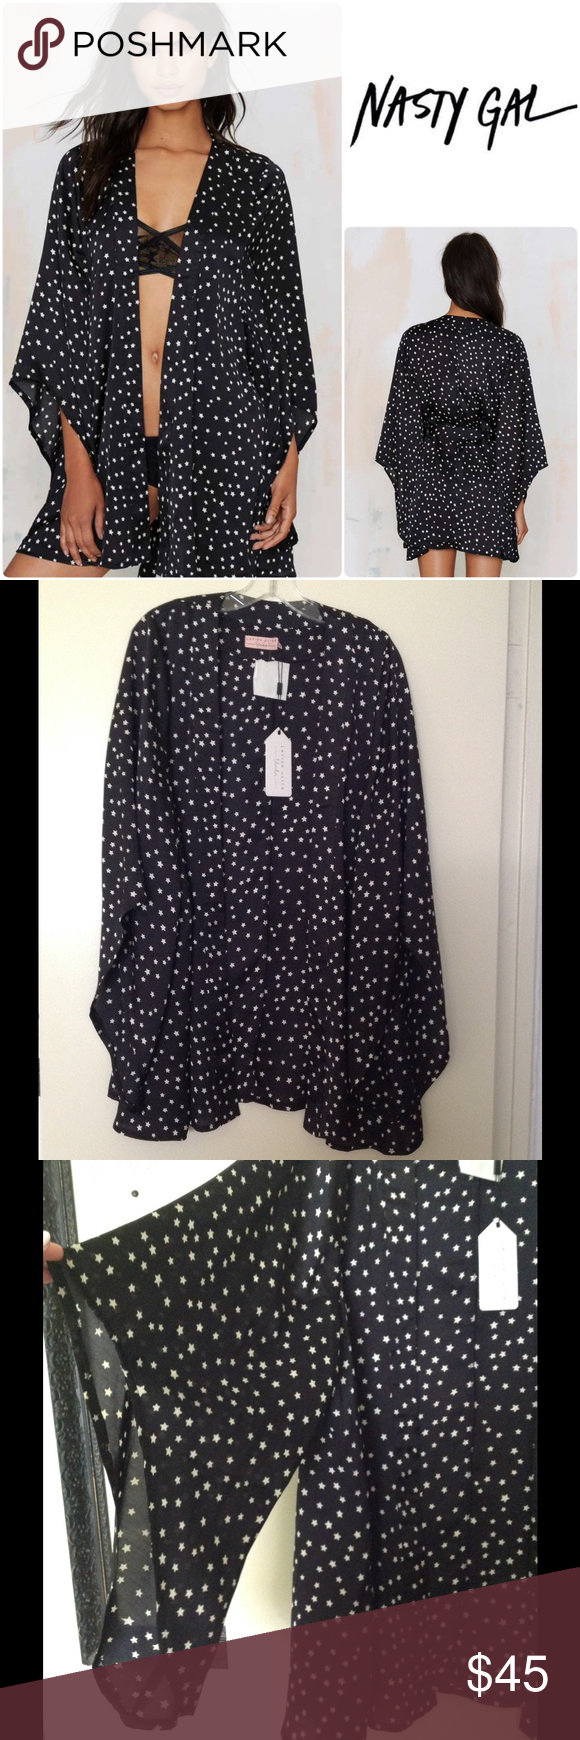 Star print kimono \ S The Sky High Kimono is made in black satin and features star print, draping kimono sleeves. By Lavish Alice. belt sash not included!! *Polyester  *Runs true to size  *Hand wash cold  *Imported Nasty Gal Tops